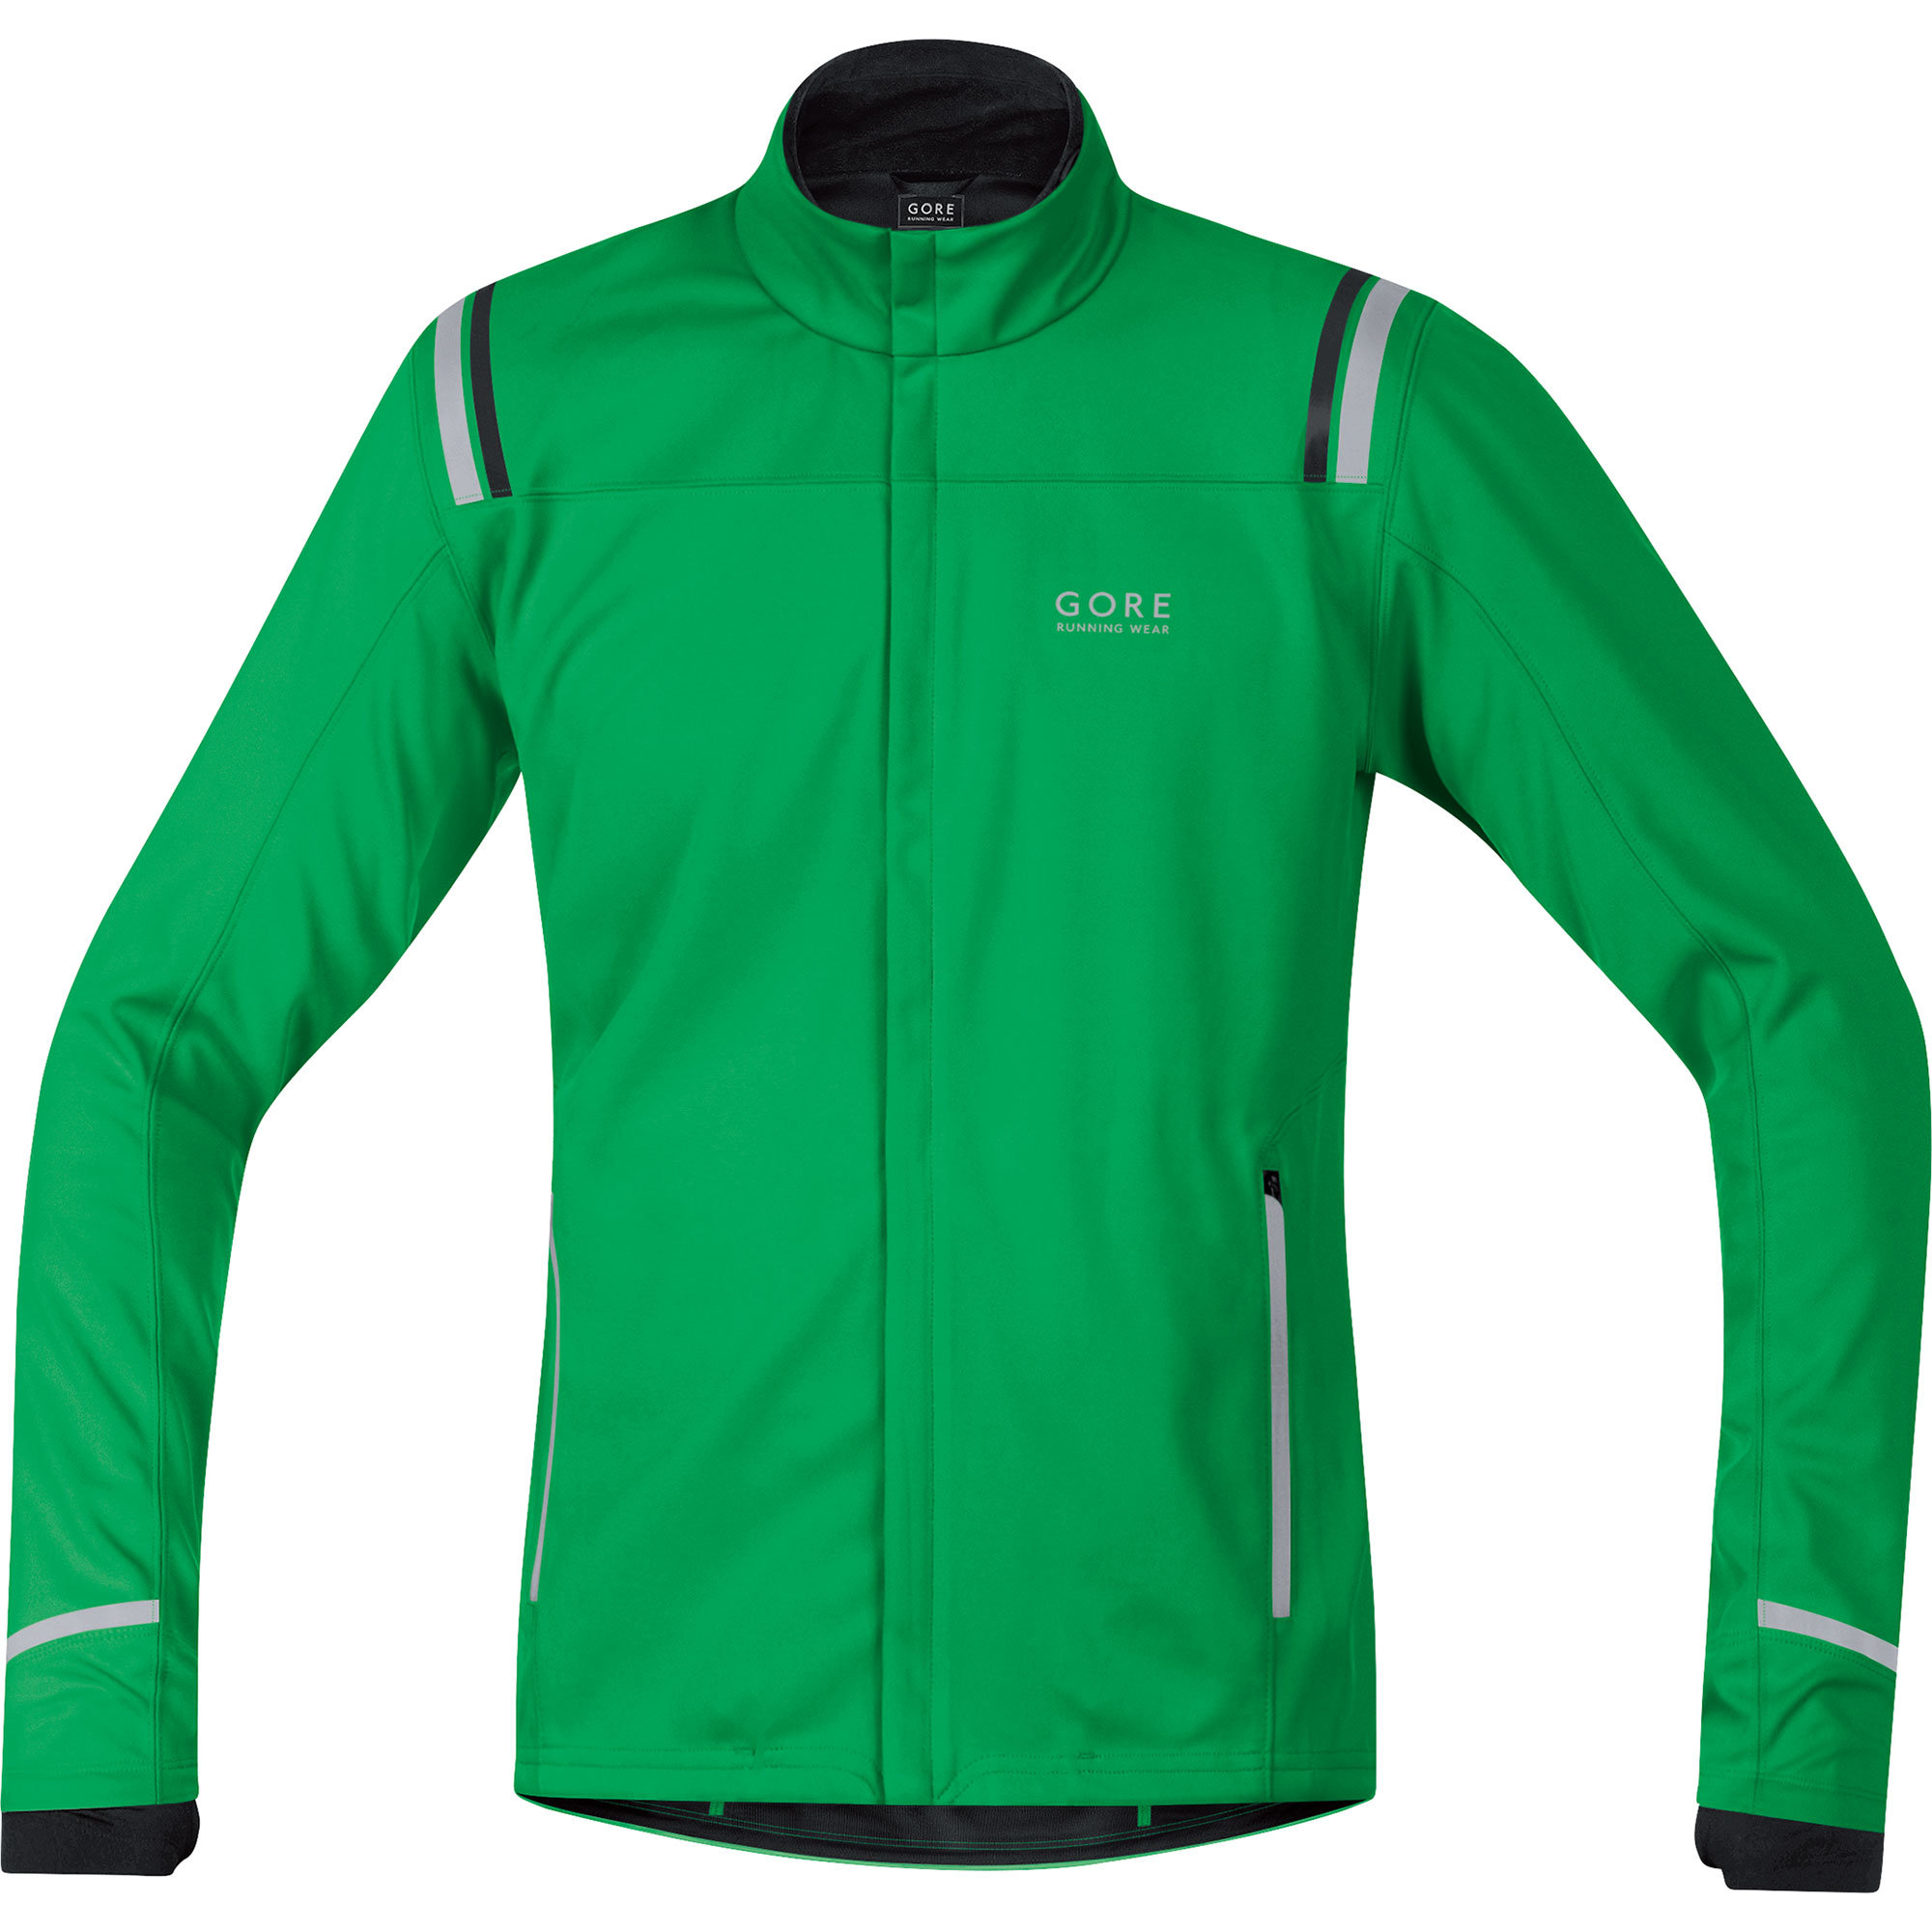 Gore Mythos 2.0 WS SO Jacket in Fresh Green